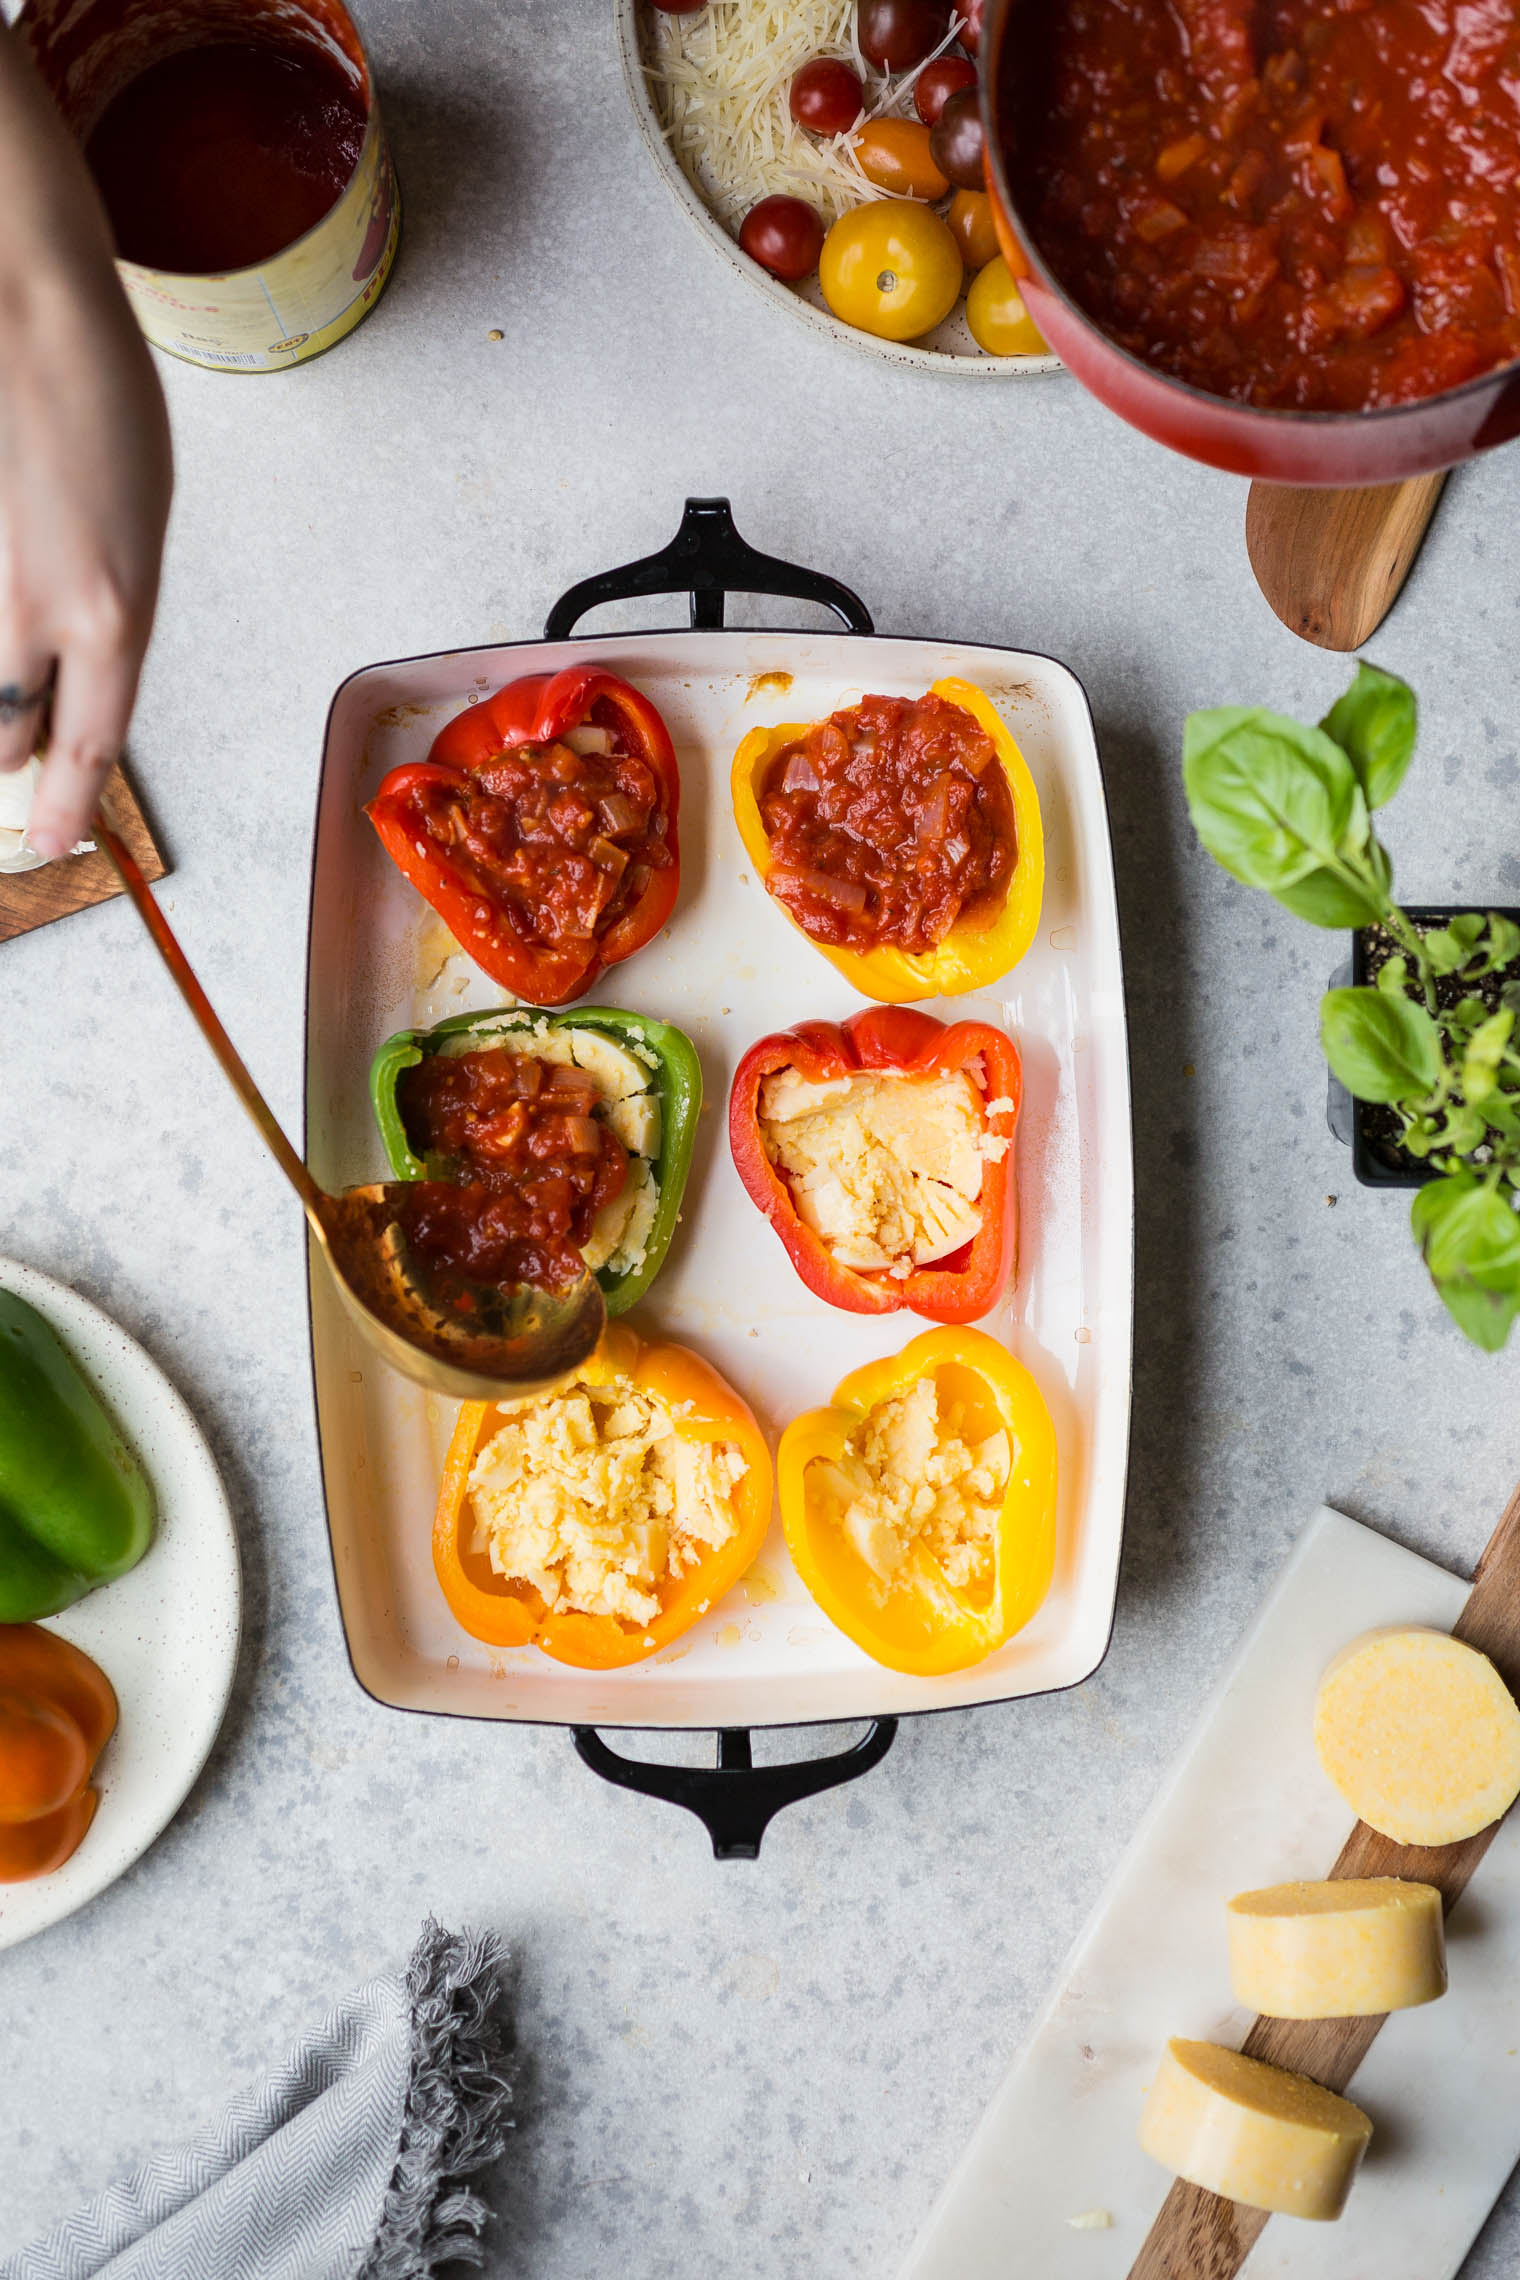 ladling tomato sauce into pizza stuffed bell pepper halves